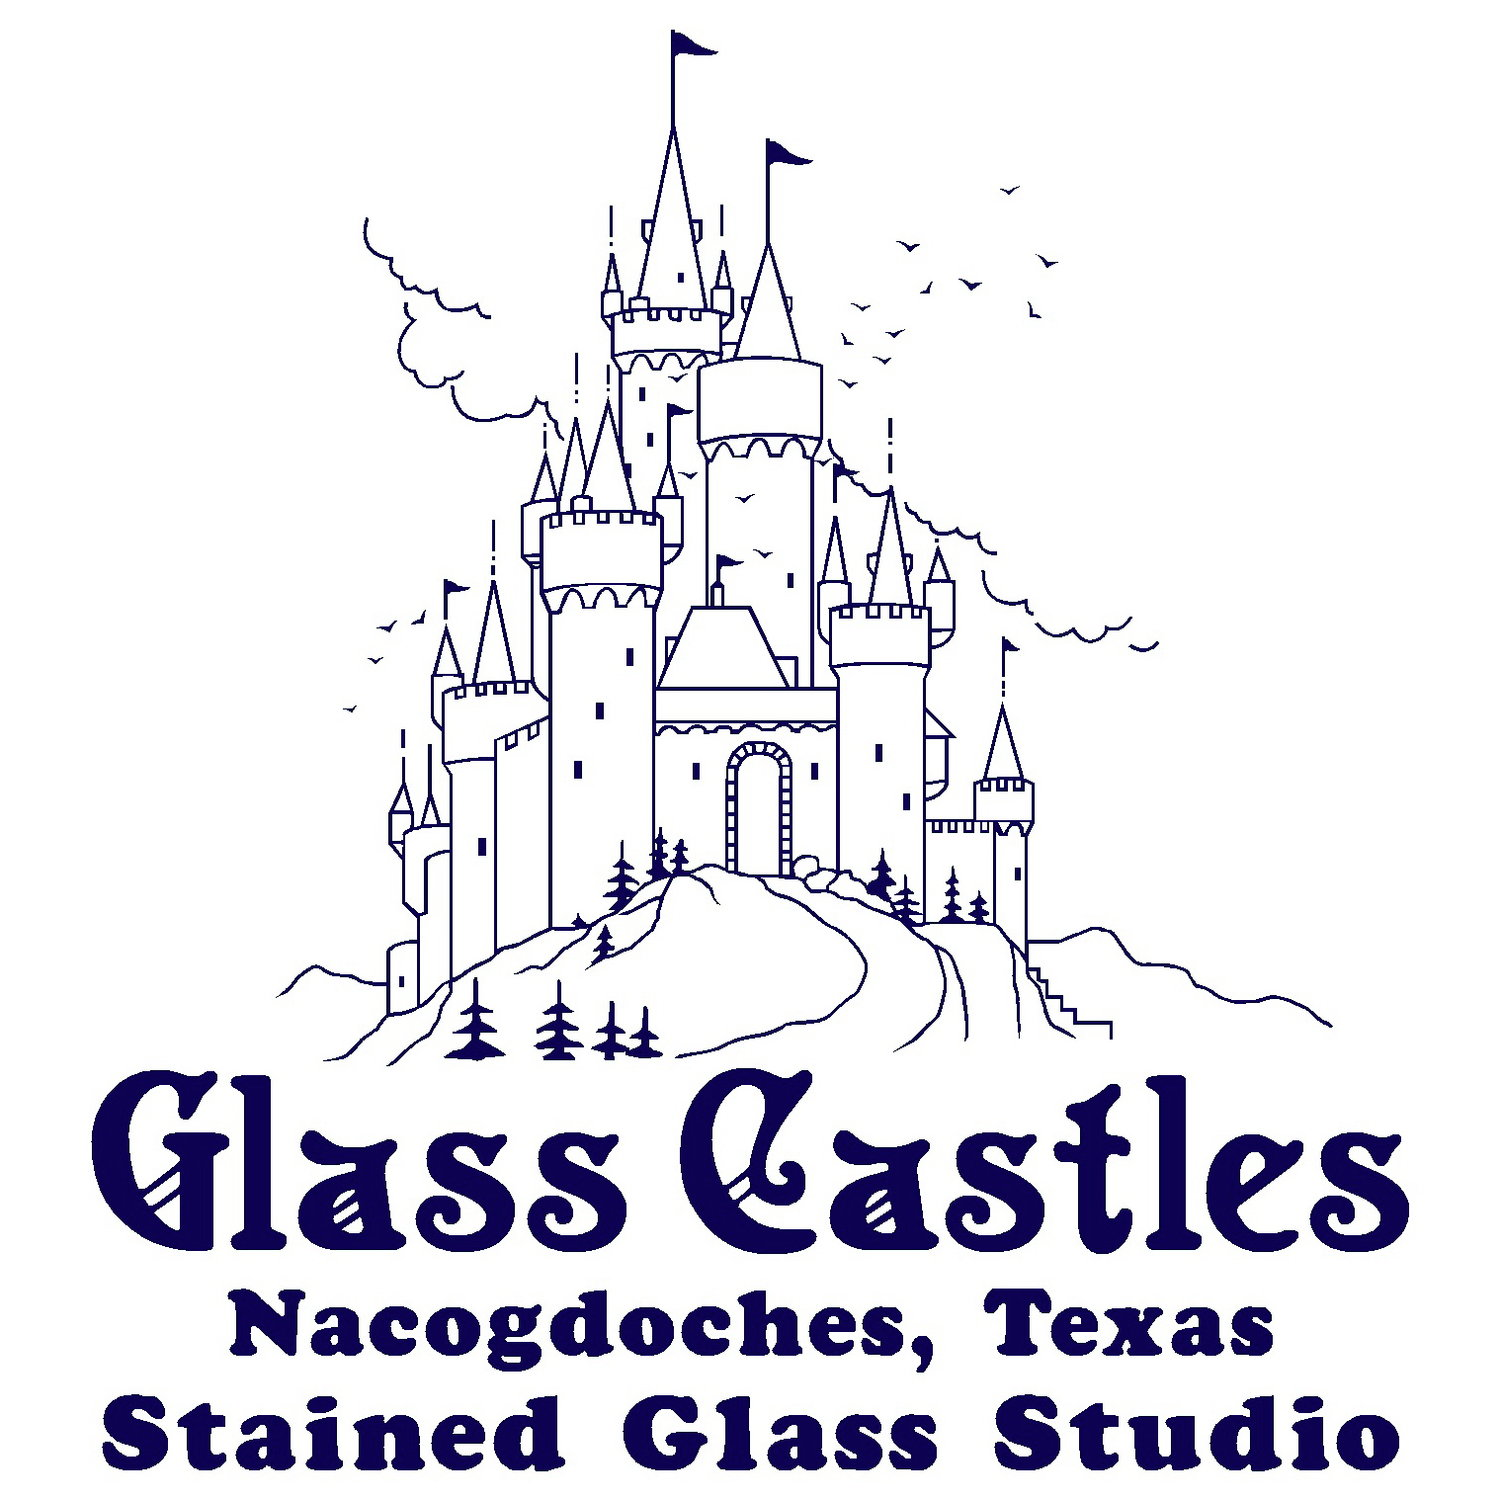 Glass Castles Stained Glass Studio and Gift Shop